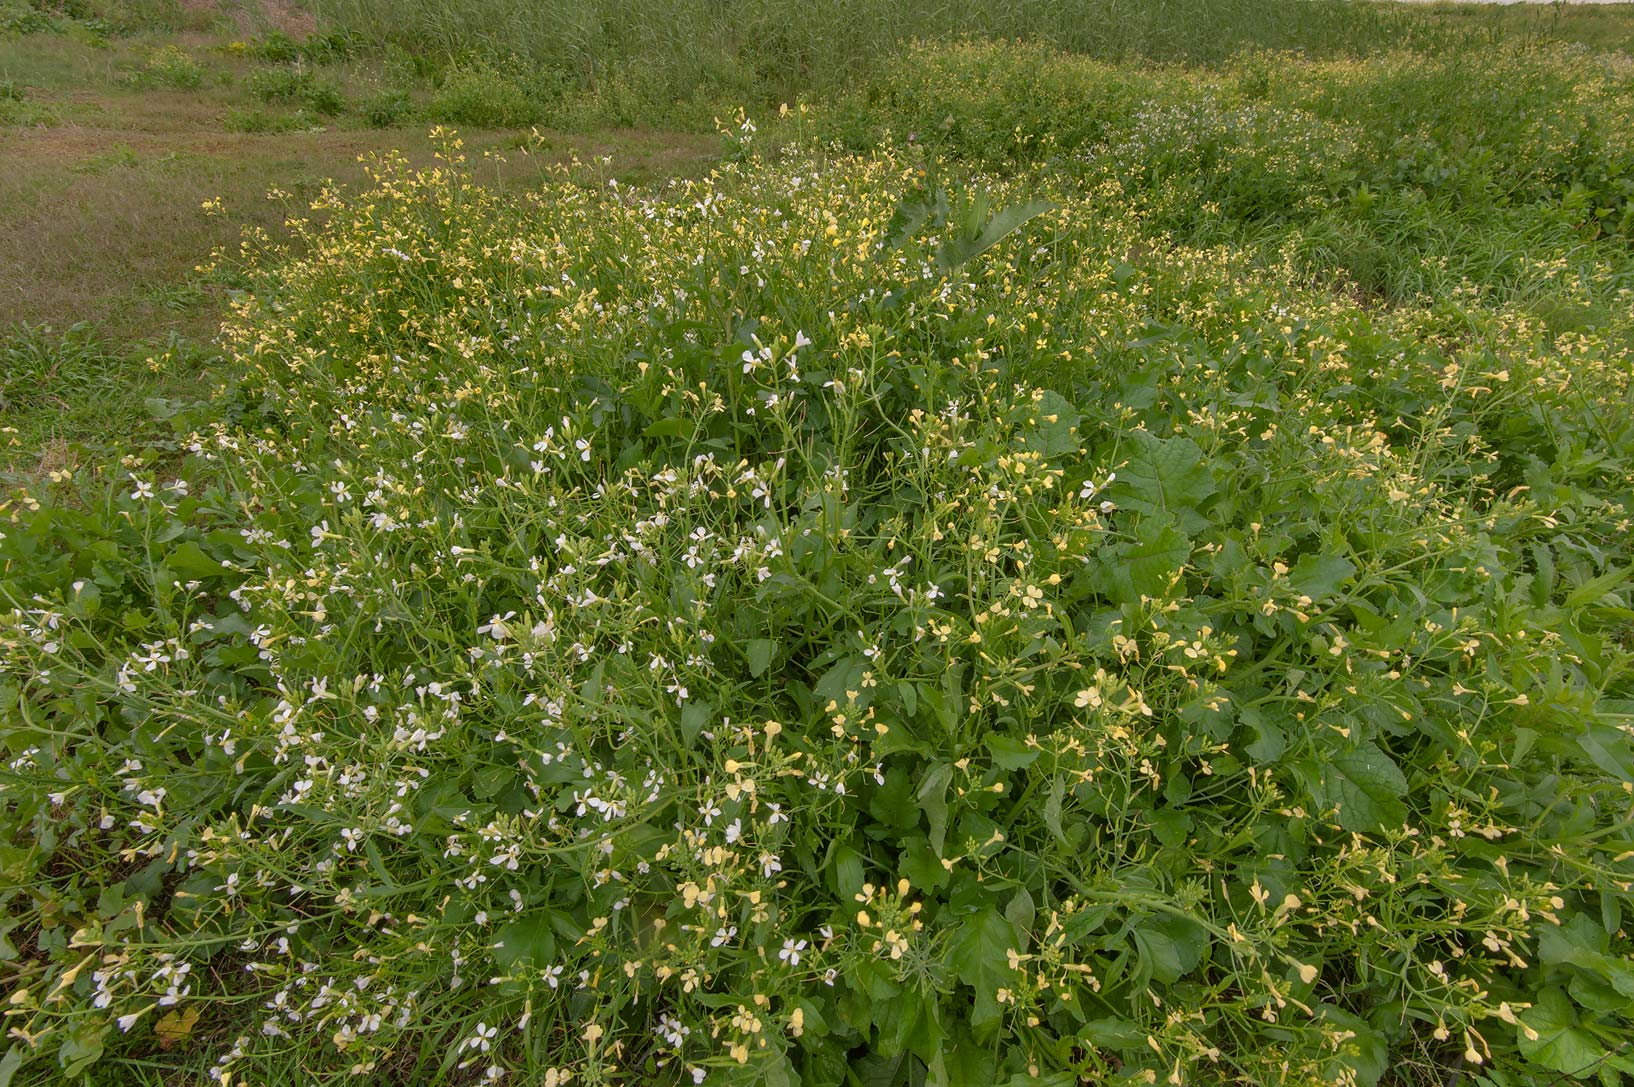 Blooming rapeseed (Brassica napus) on Green...in Irkhaya (Irkaya) Farms. Qatar